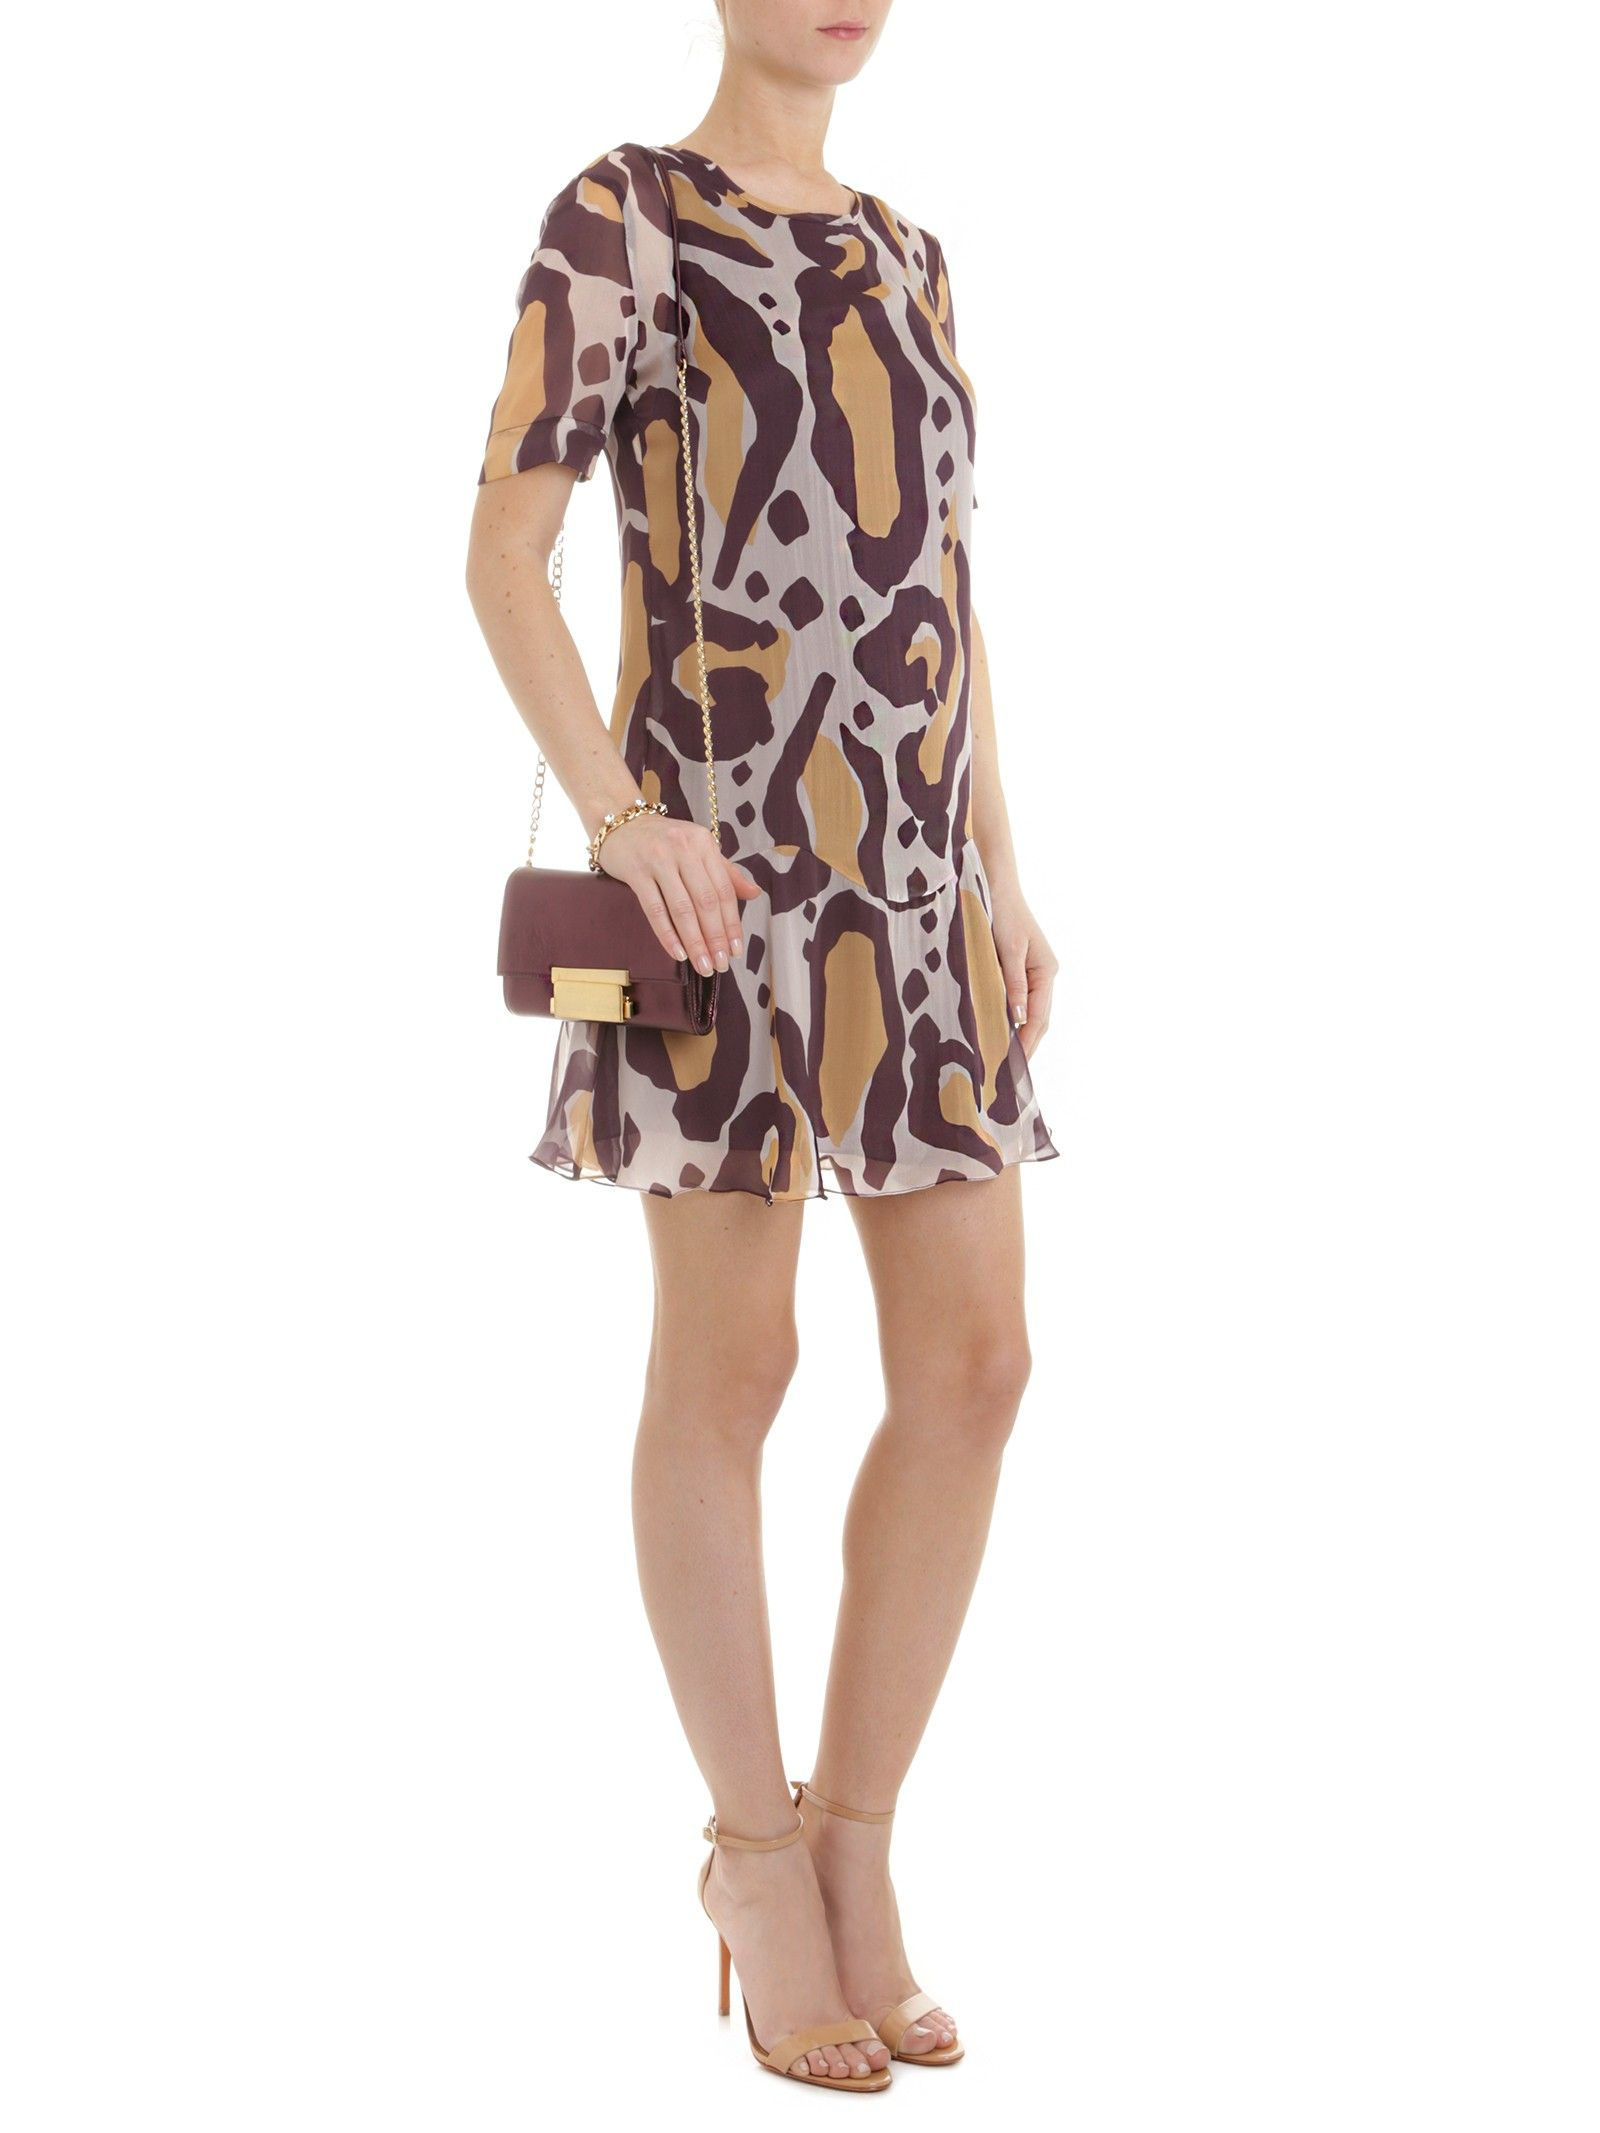 81cb924d82 Shop2gether - VESTIDO SEDA ONÇA PANTANAL - ANIMALE - ANIMAL PRINT ...